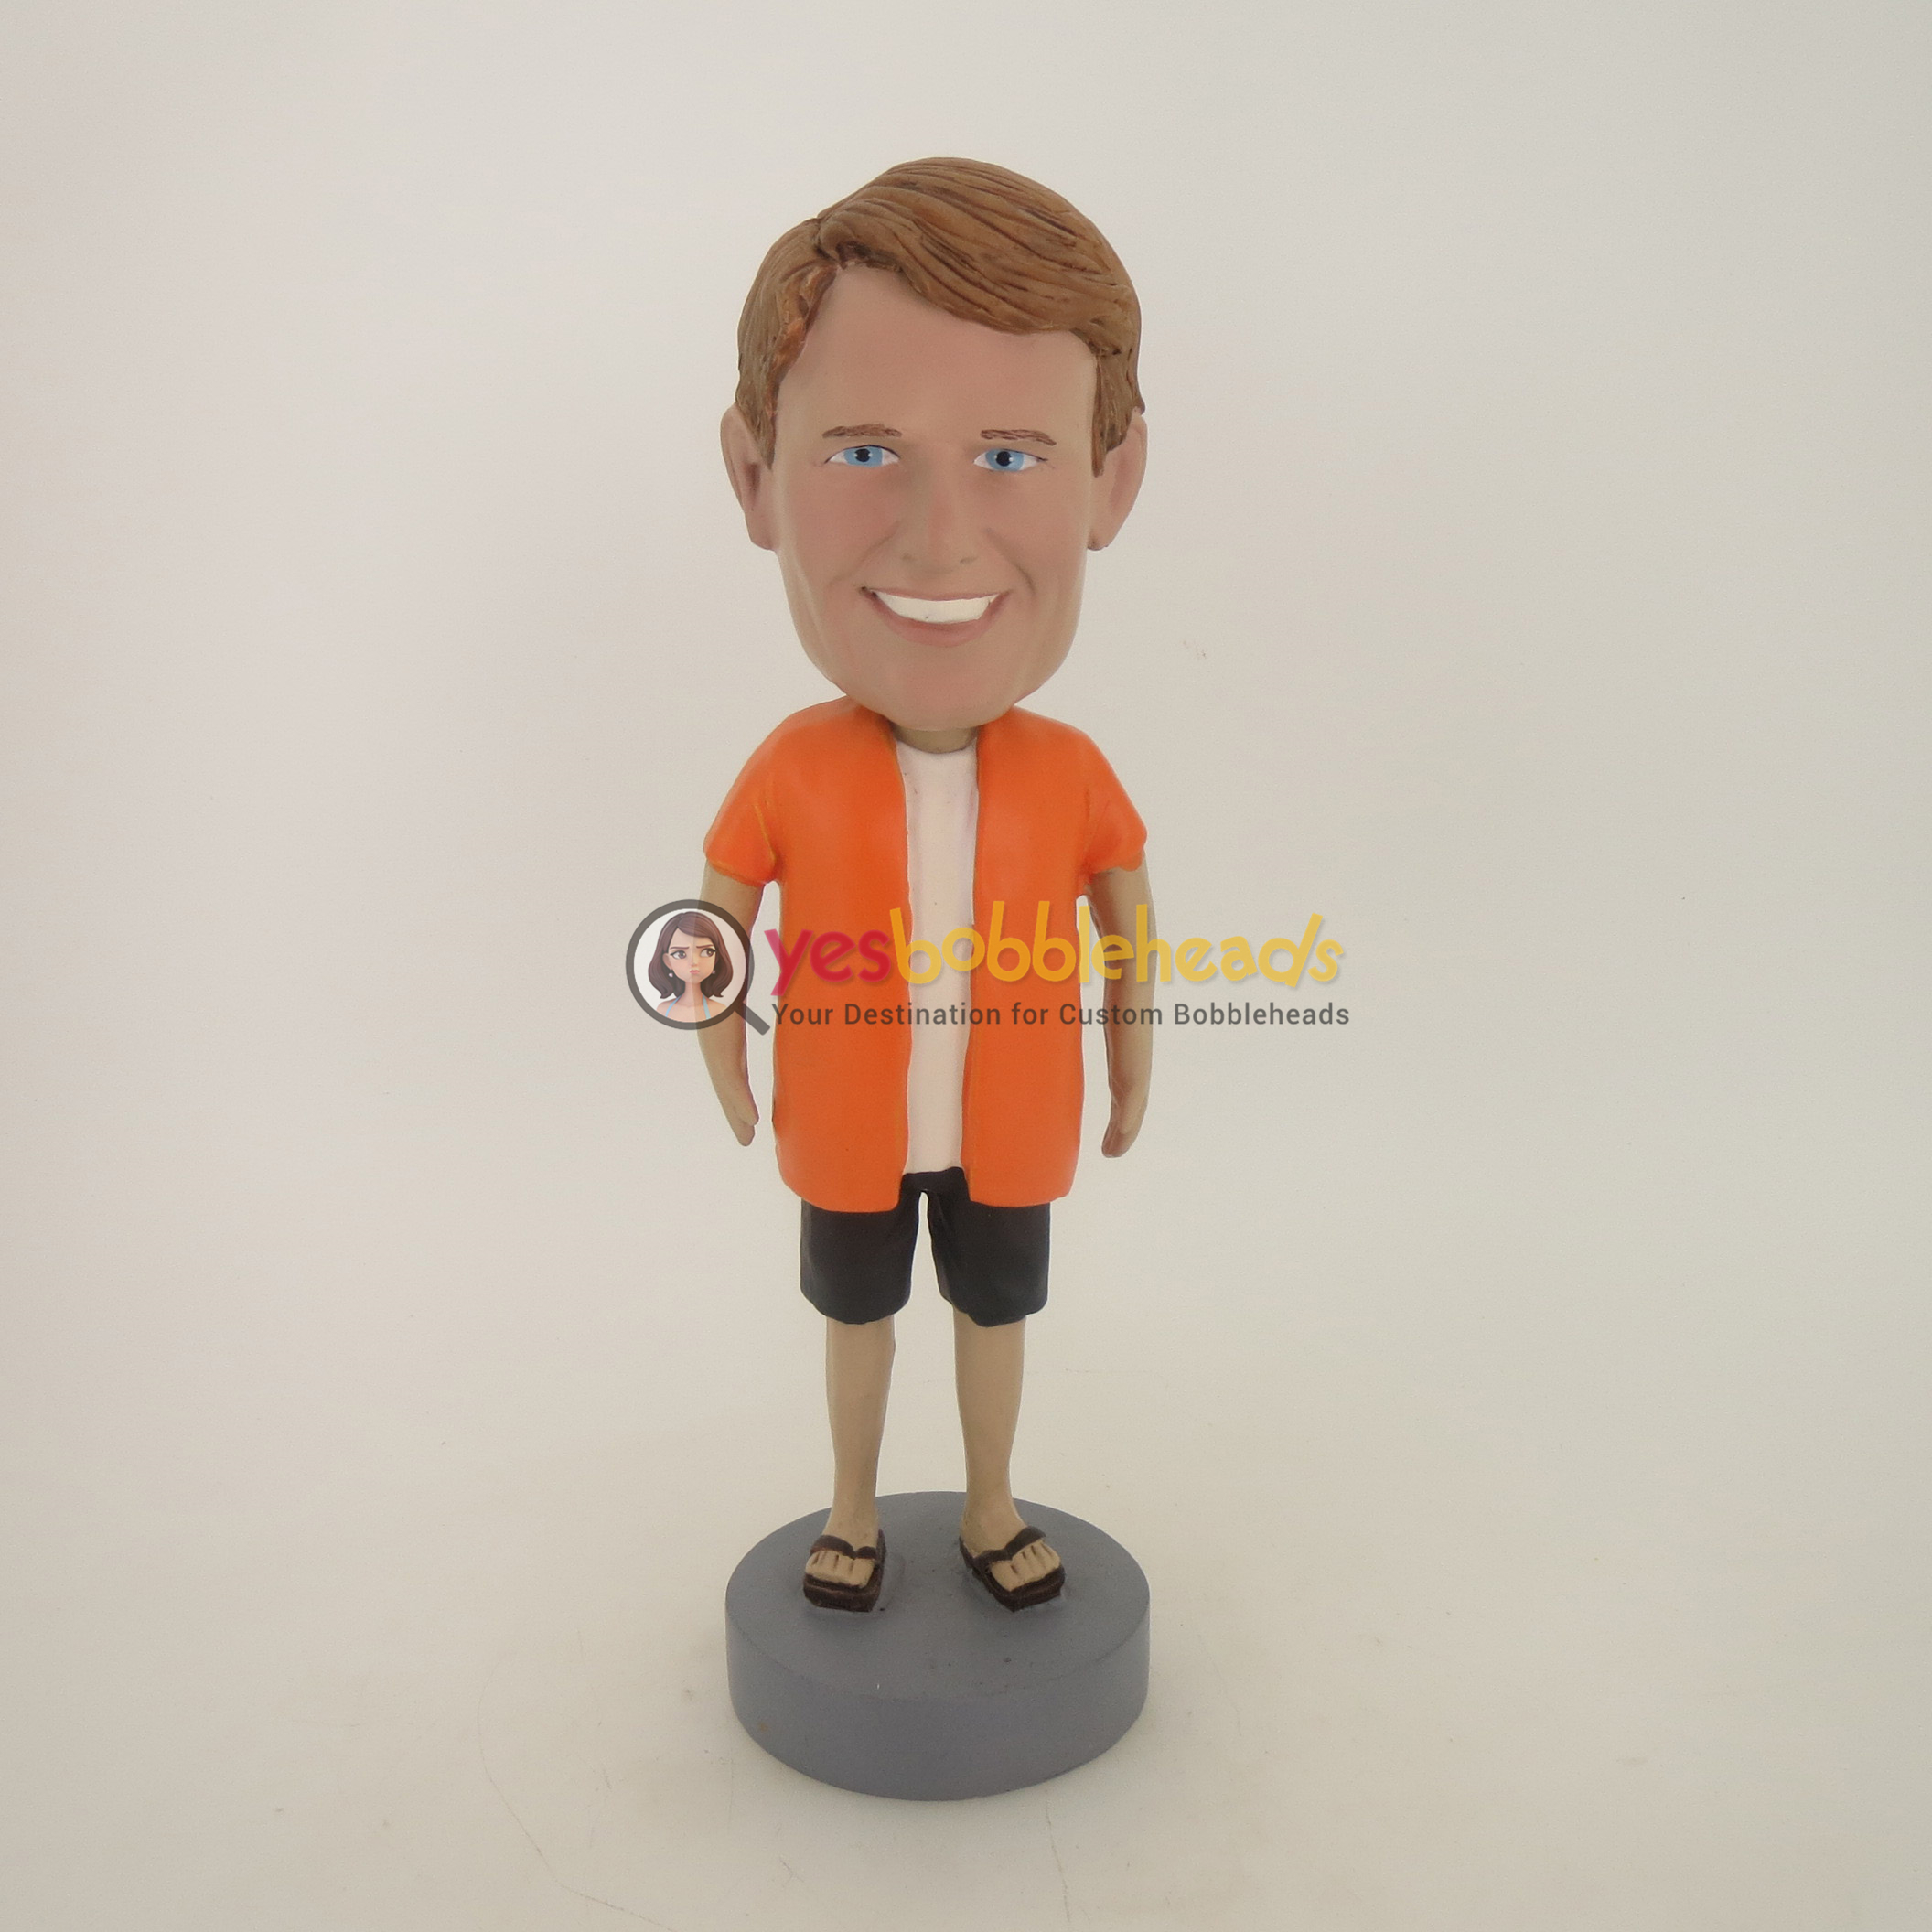 Picture of Custom Bobblehead Doll: Casual Man In Orange Shirt